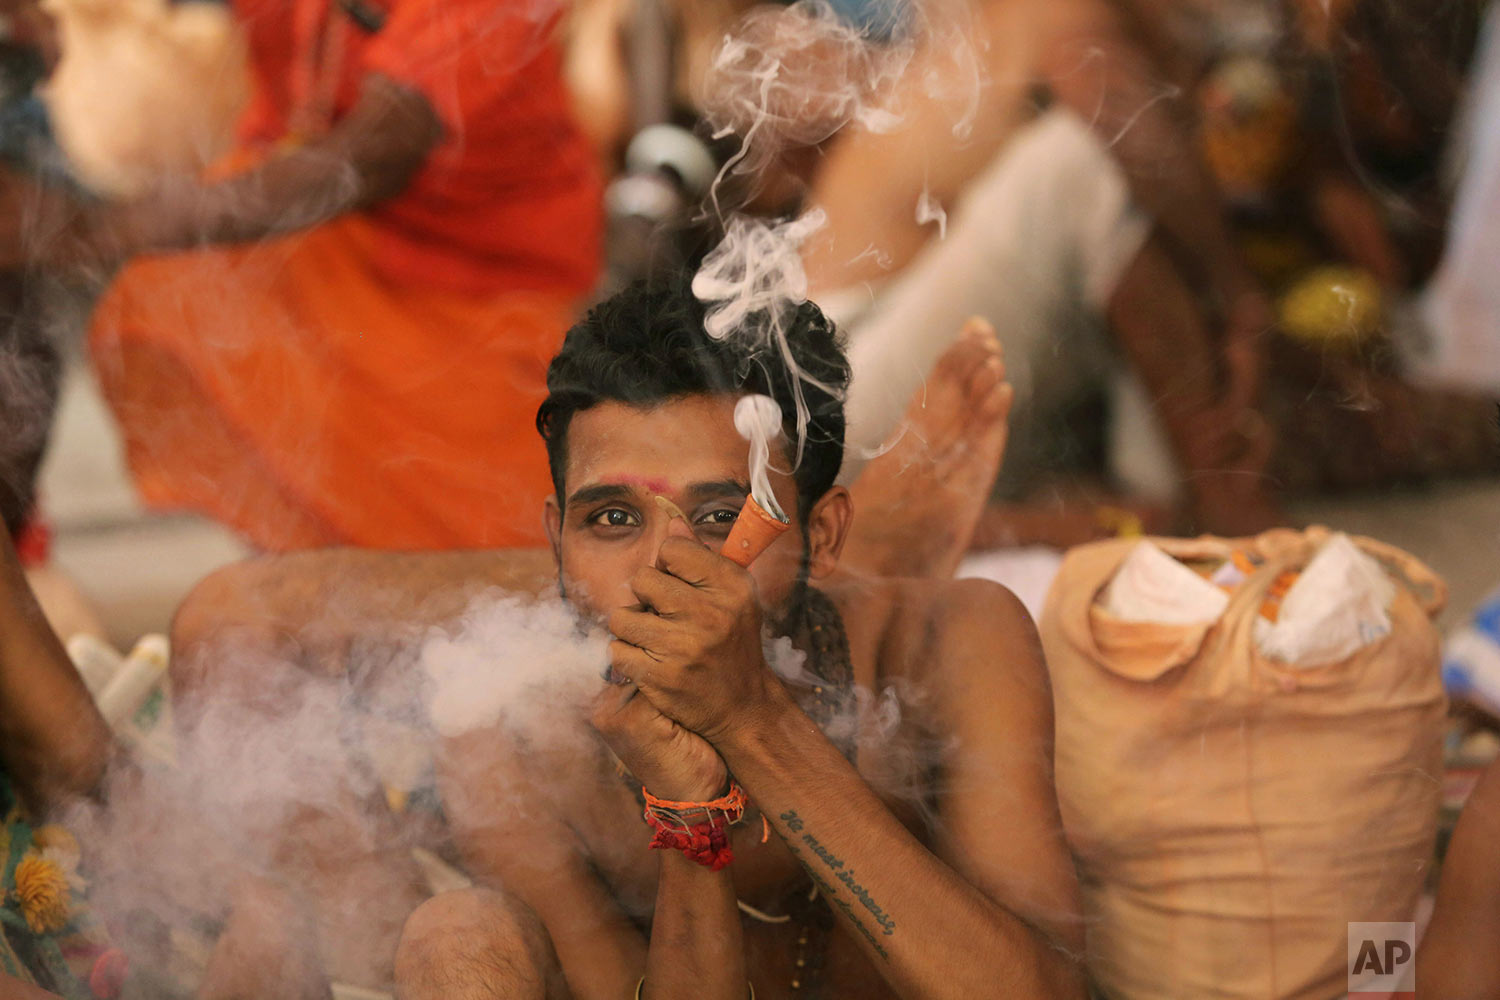 A Hindu holy man smokes as he waits to register for the annual pilgrimage to the Amarnath cave shrine in Jammu, India, July 1, 2019. (AP Photo/Channi Anand)